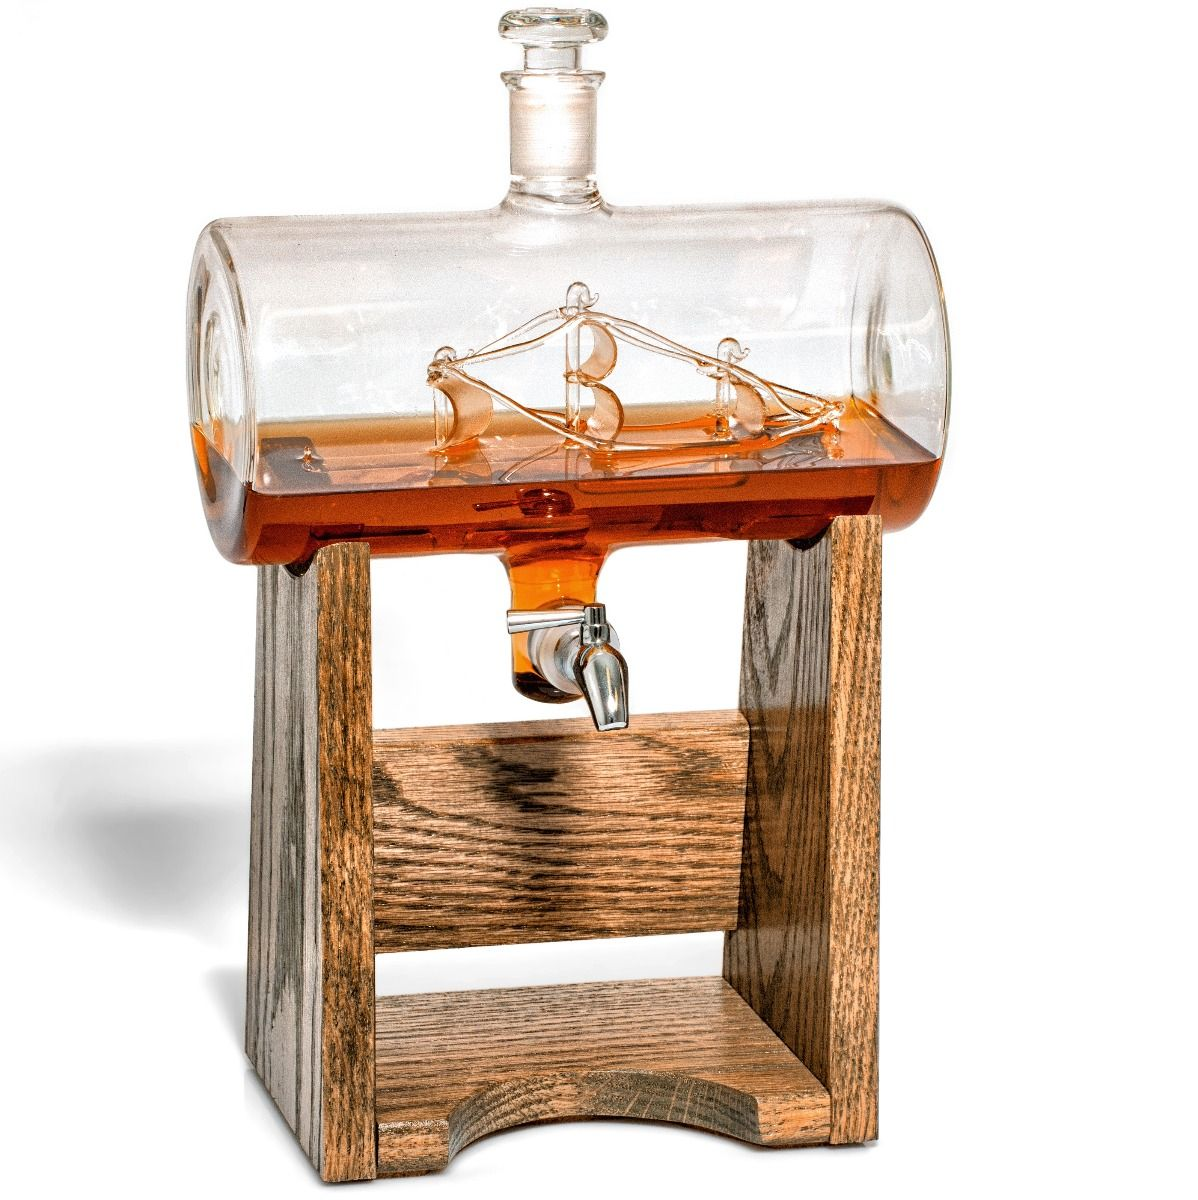 Constellation1797 whiskey decanter